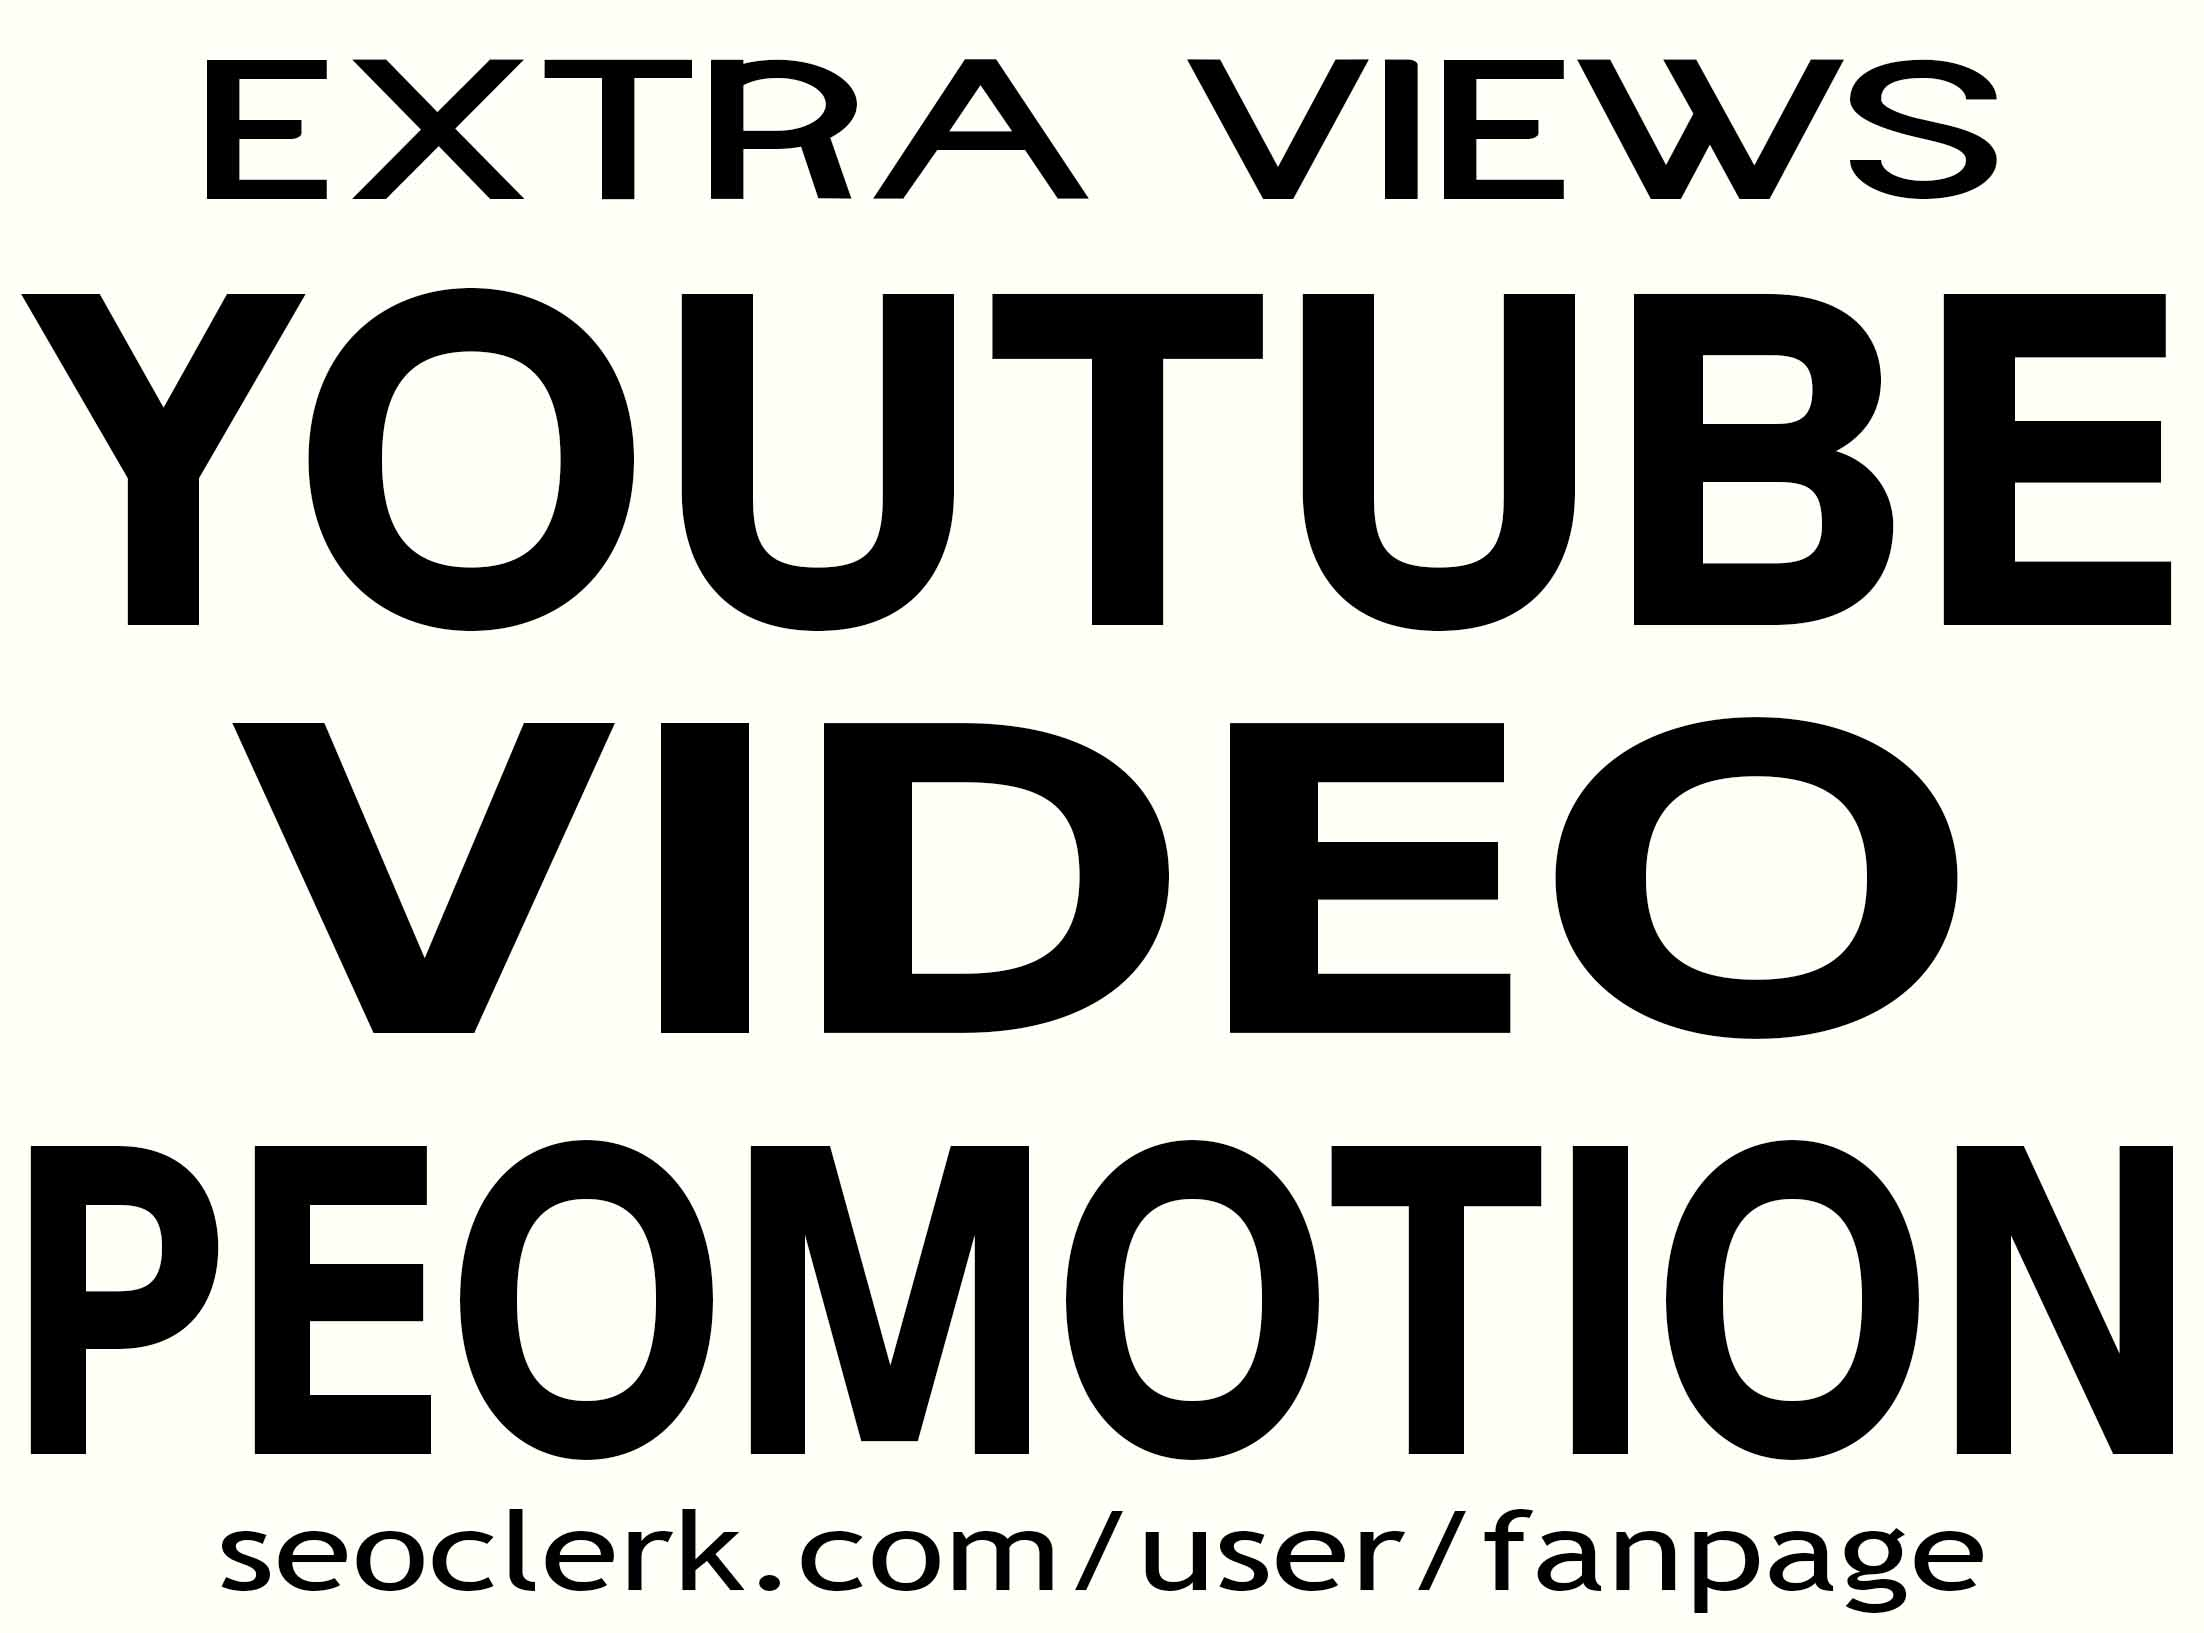 NON DROP YOUTUBE VIDEO PROMOTION HIGH QUALITY AND INSTANT